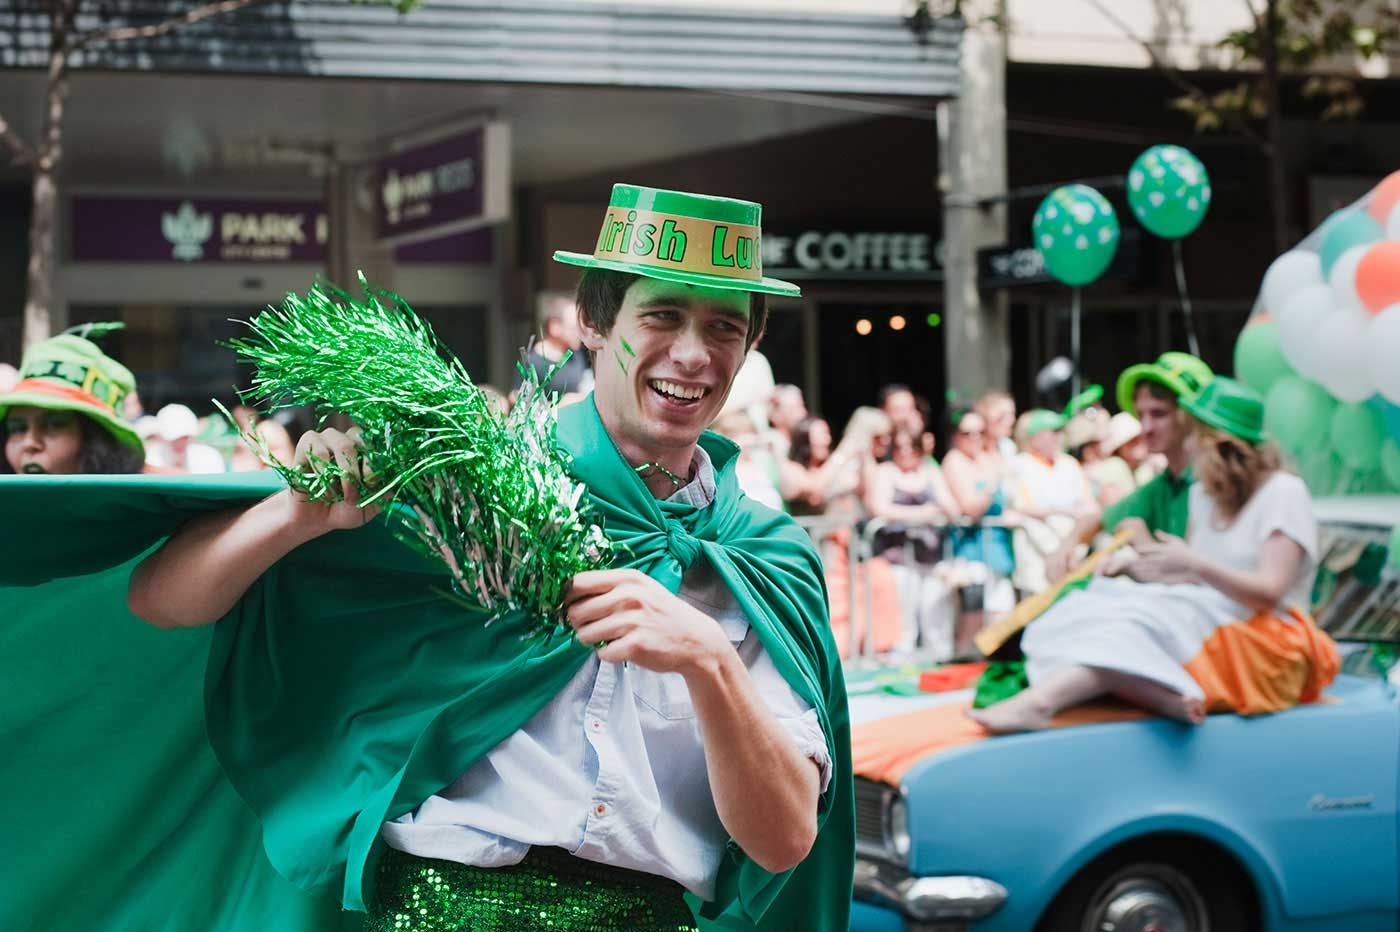 A man is wearing a green costume with a gimmick hat surrounded by other people wearing green in a procession on a city street. - click to view larger image